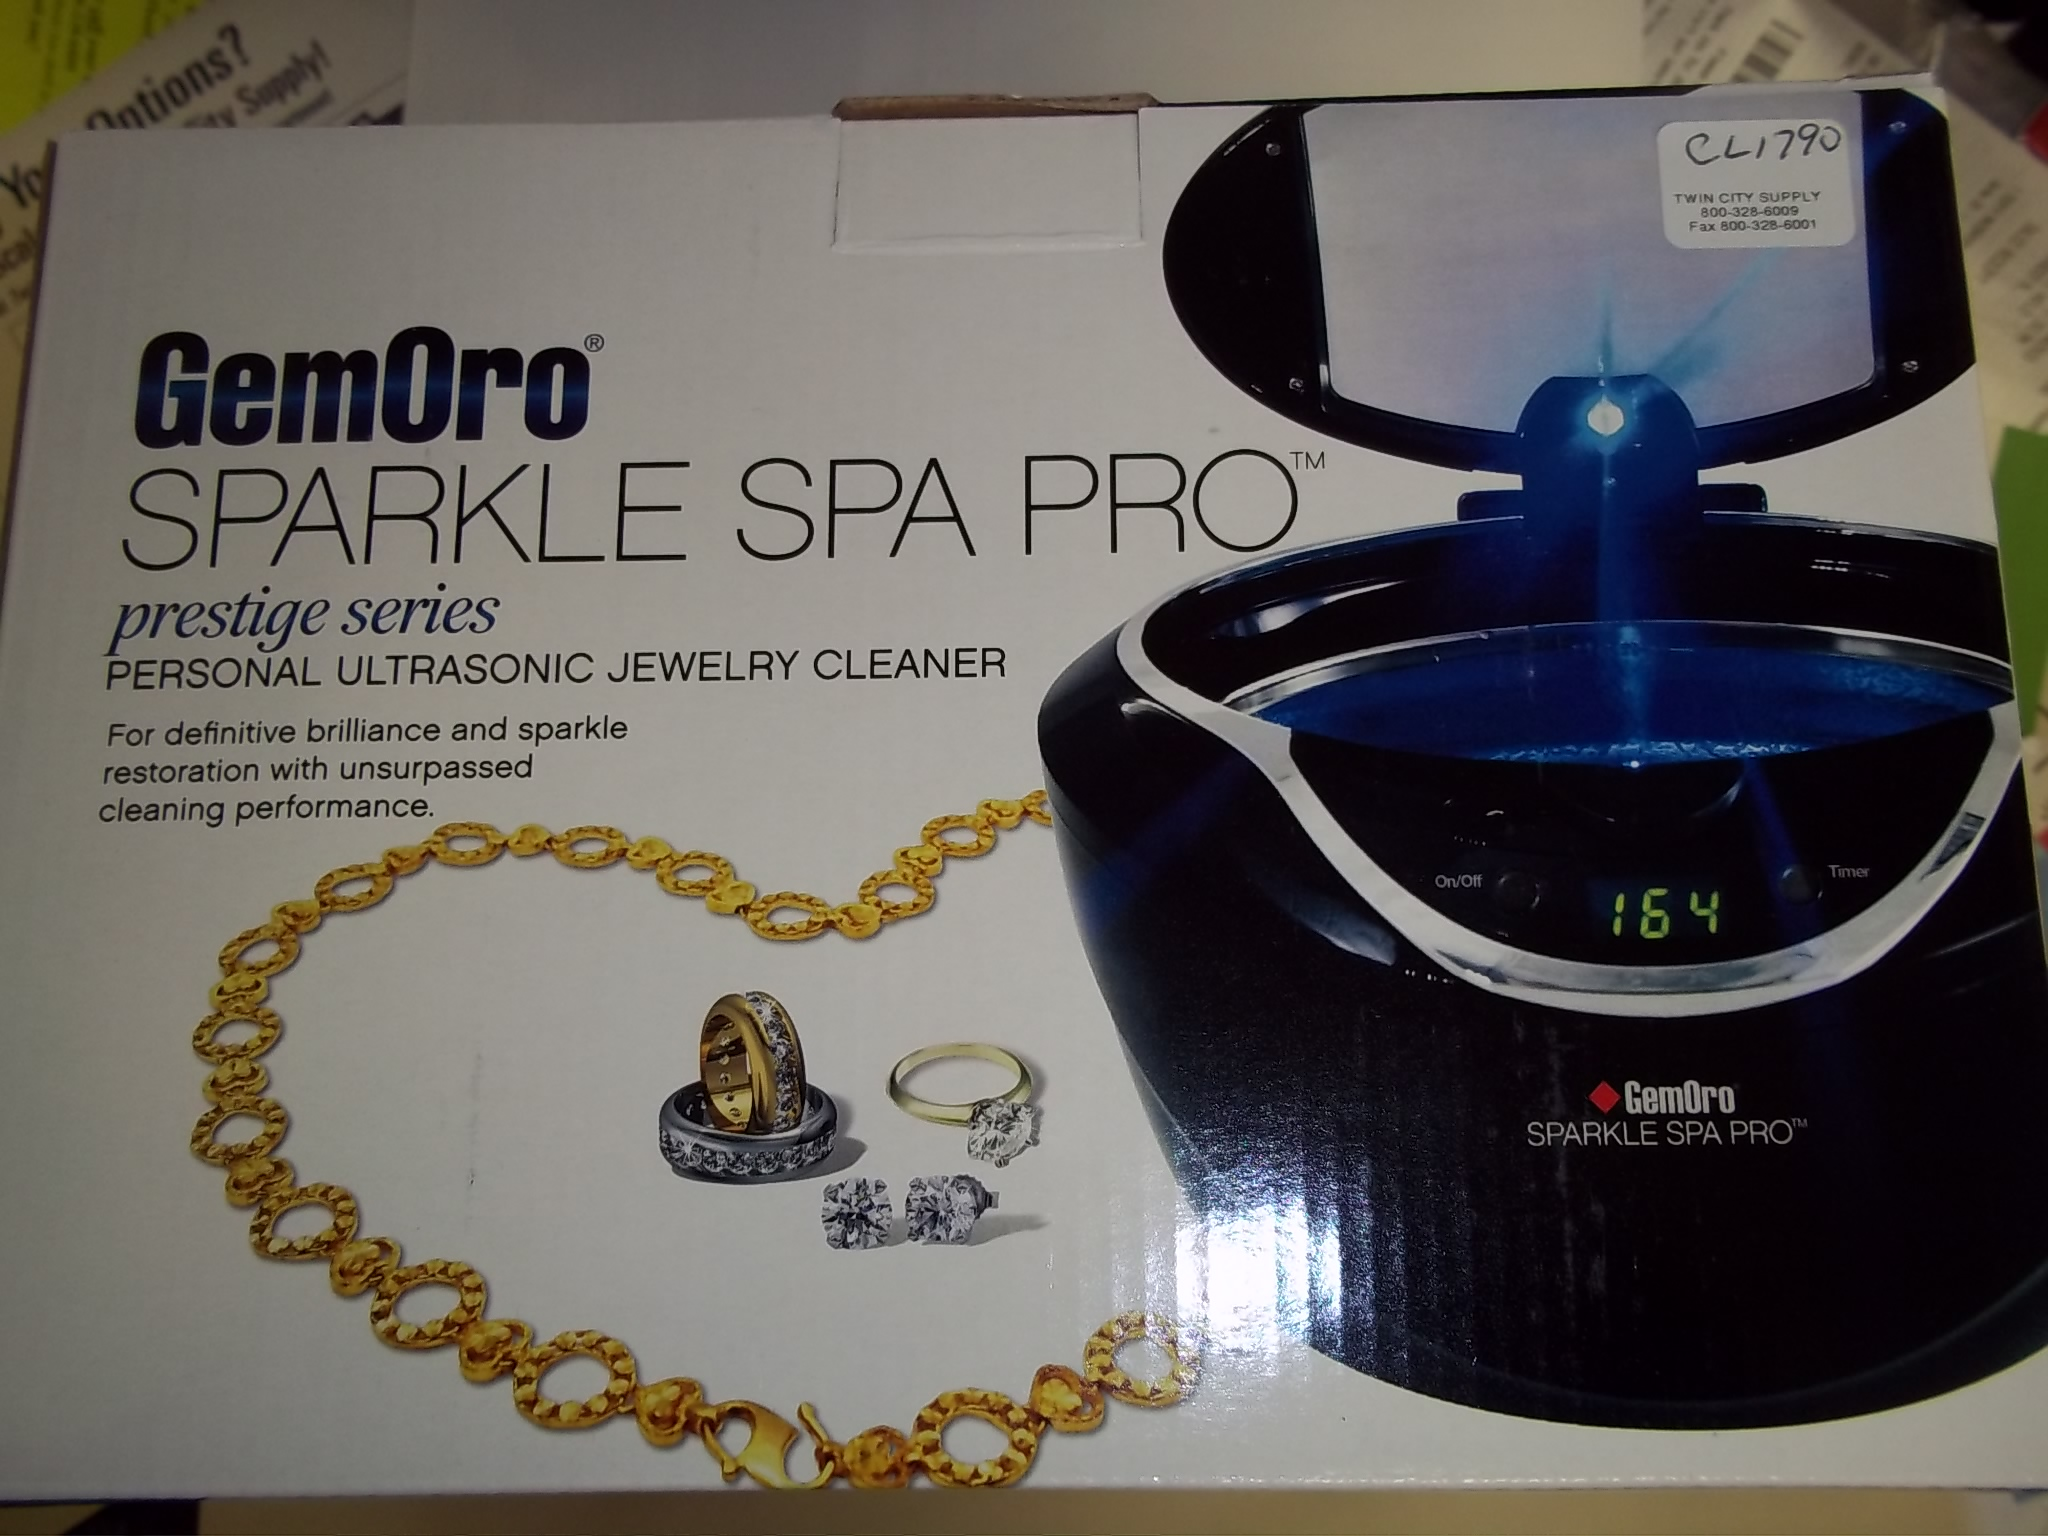 CL1790 NEW! GEM-ORO DIGITAL Sparkle Spa PRO Personal Ultrasonic Jewelry Cleaner